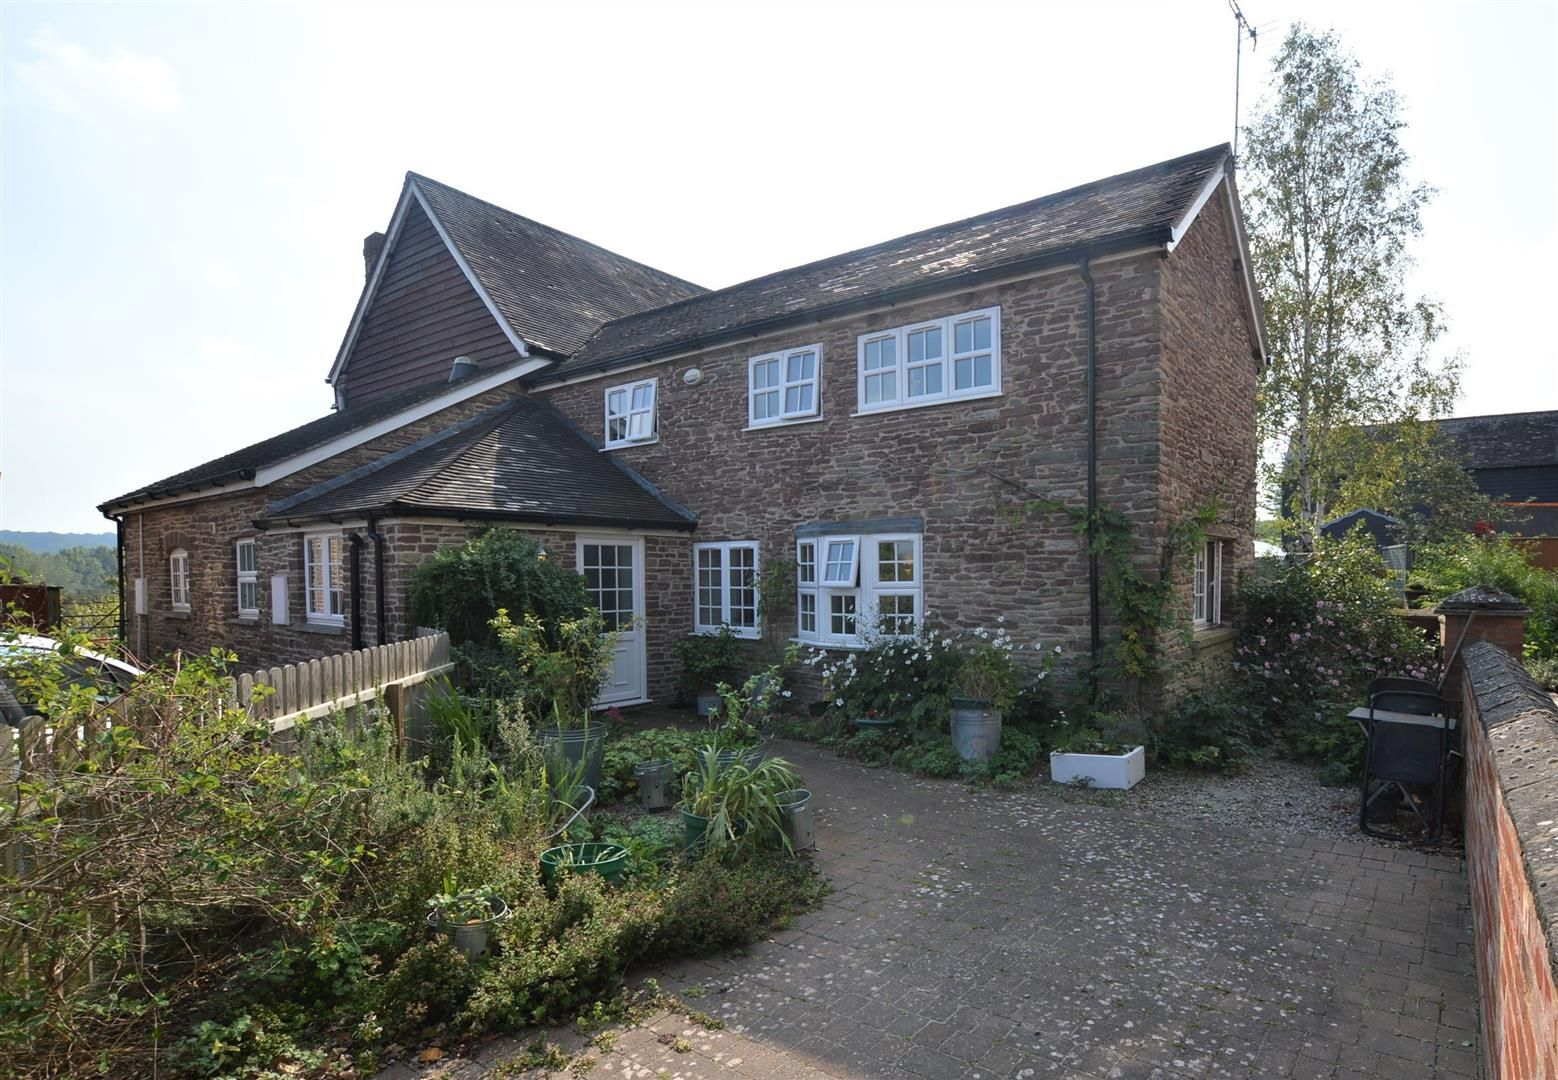 2 bed barn conversion for sale in Wharton, HR6